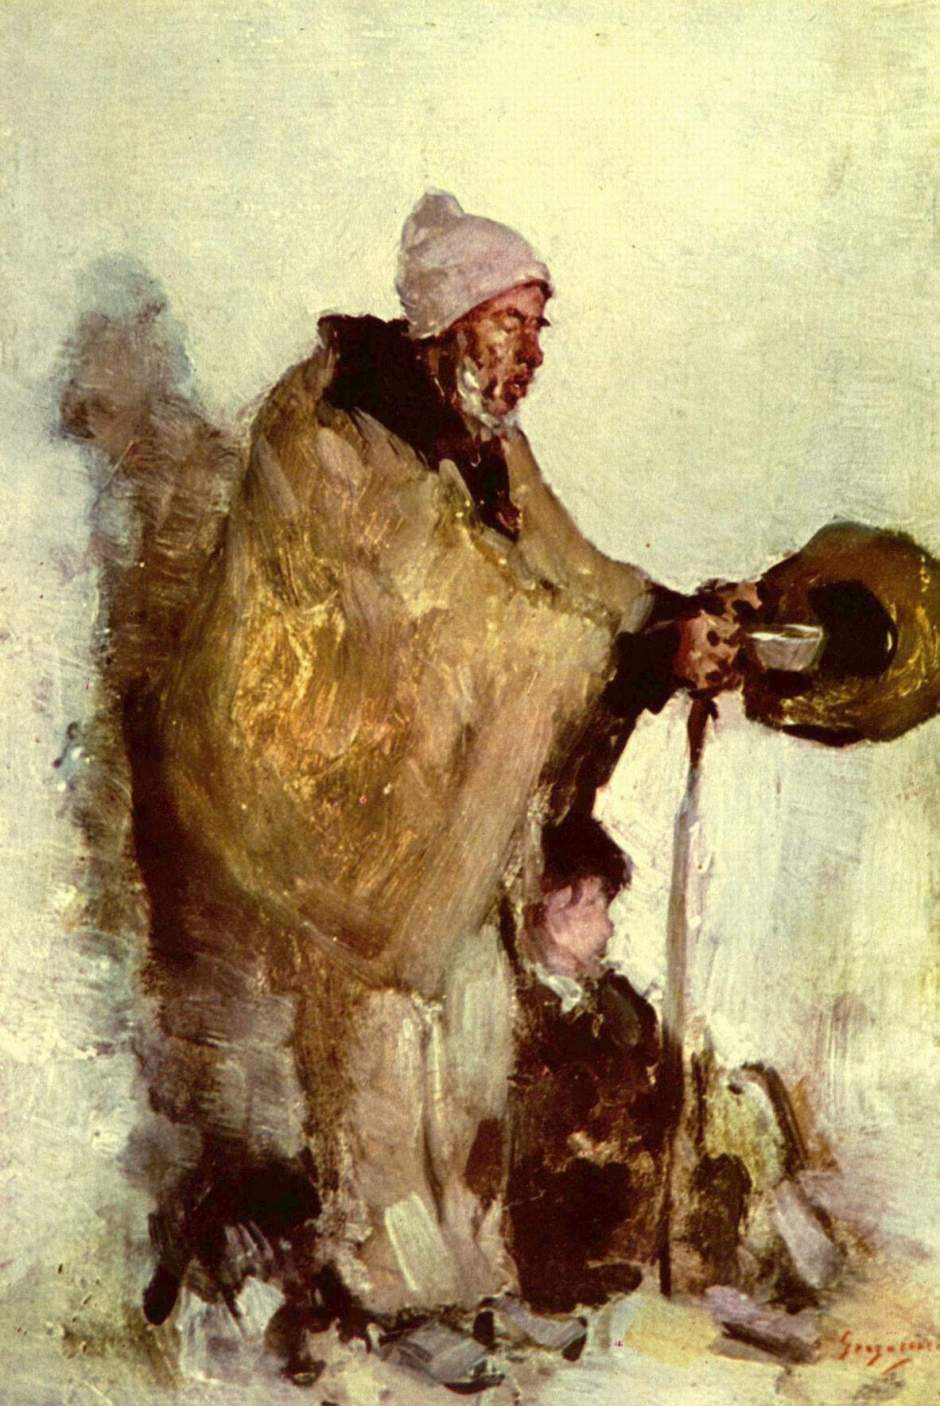 Nicolae Grigorescu, Breton Beggar (date not known), oil on panel, 25.5 x 16.5 cm, Private collection. WikiArt.